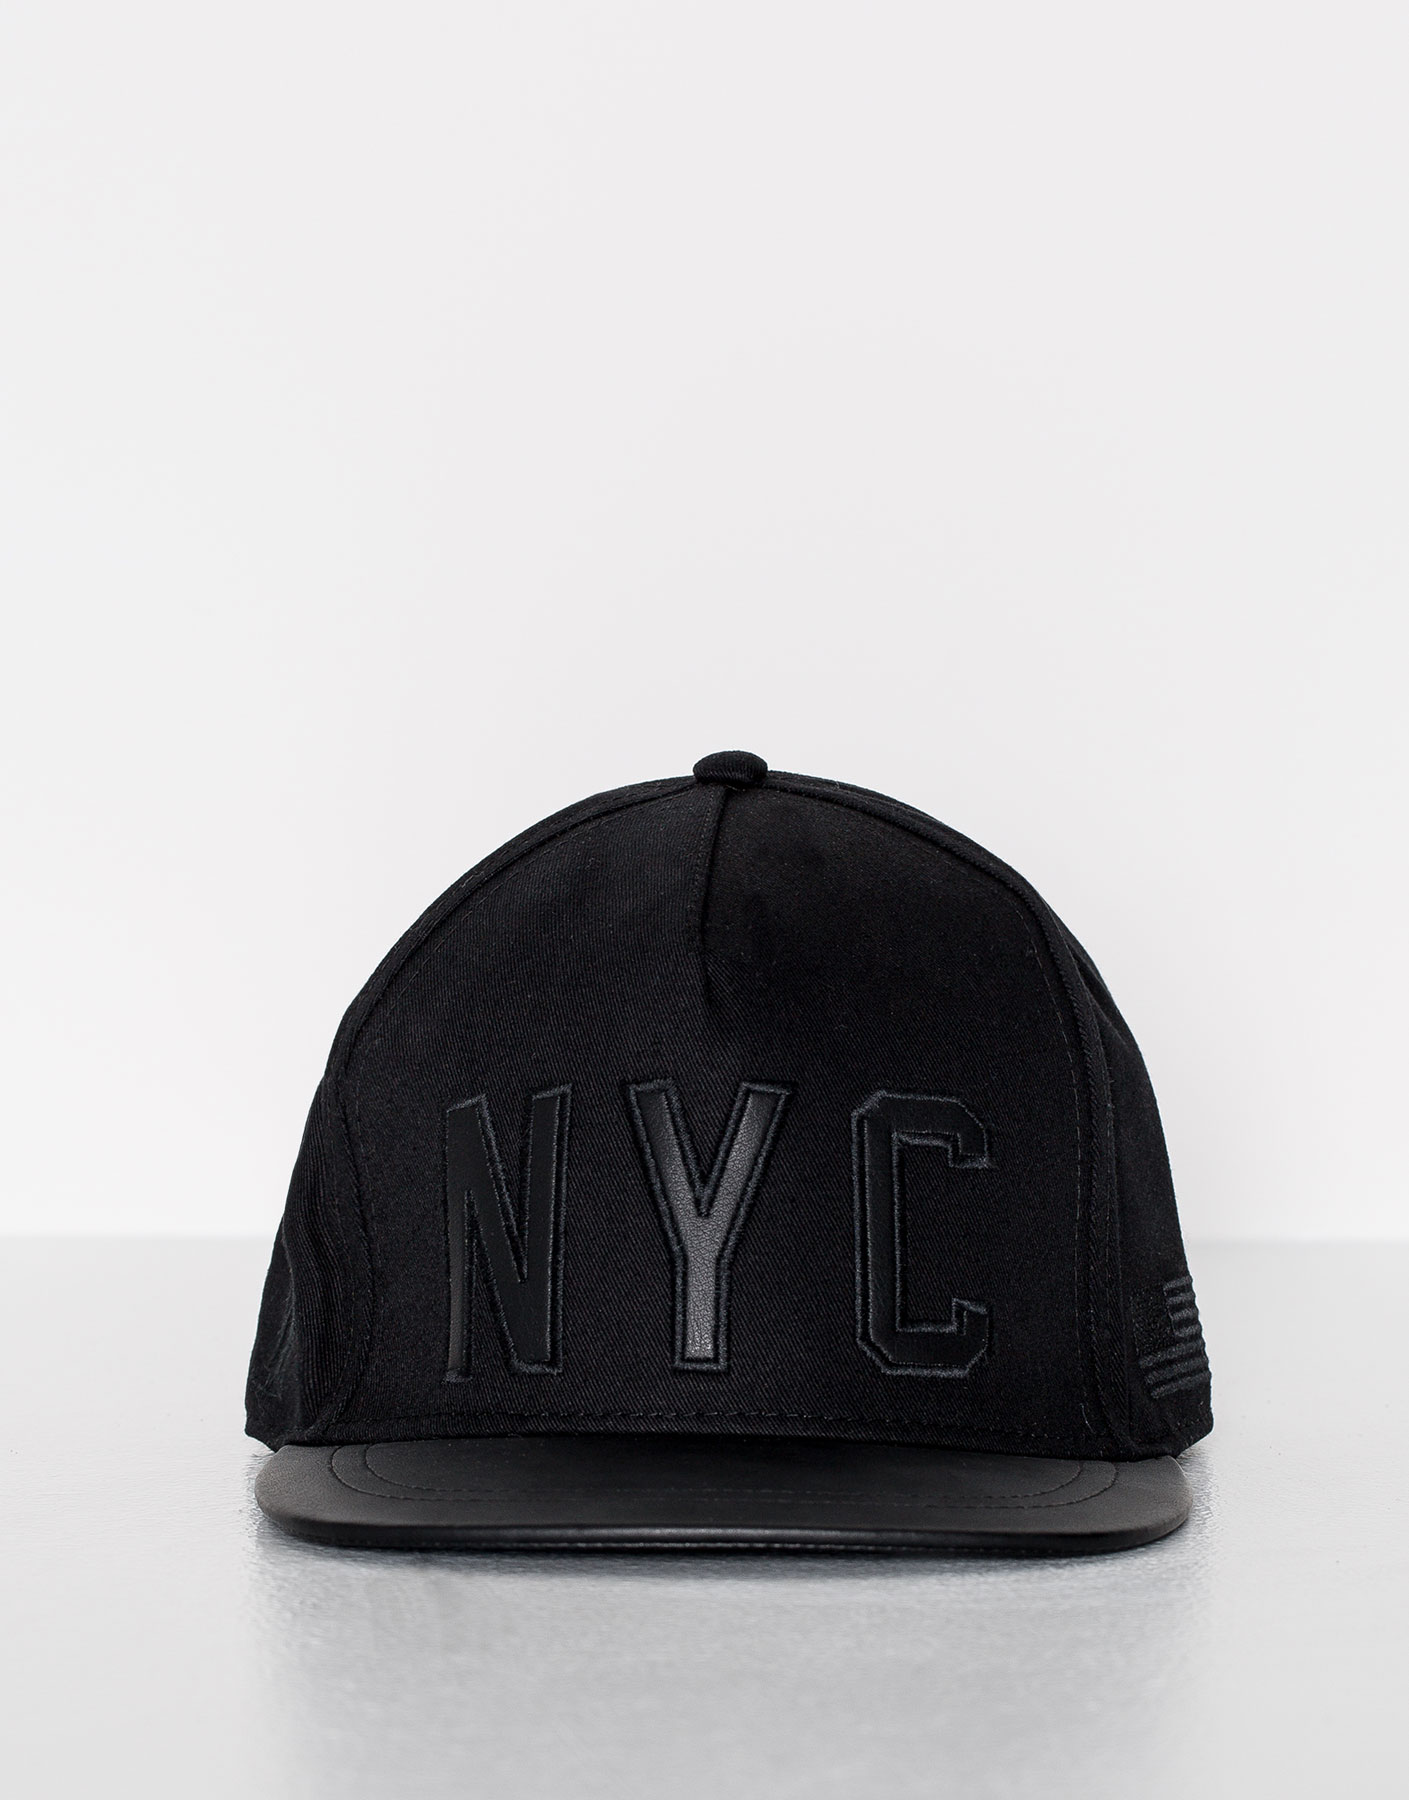 Gorra negra new york city